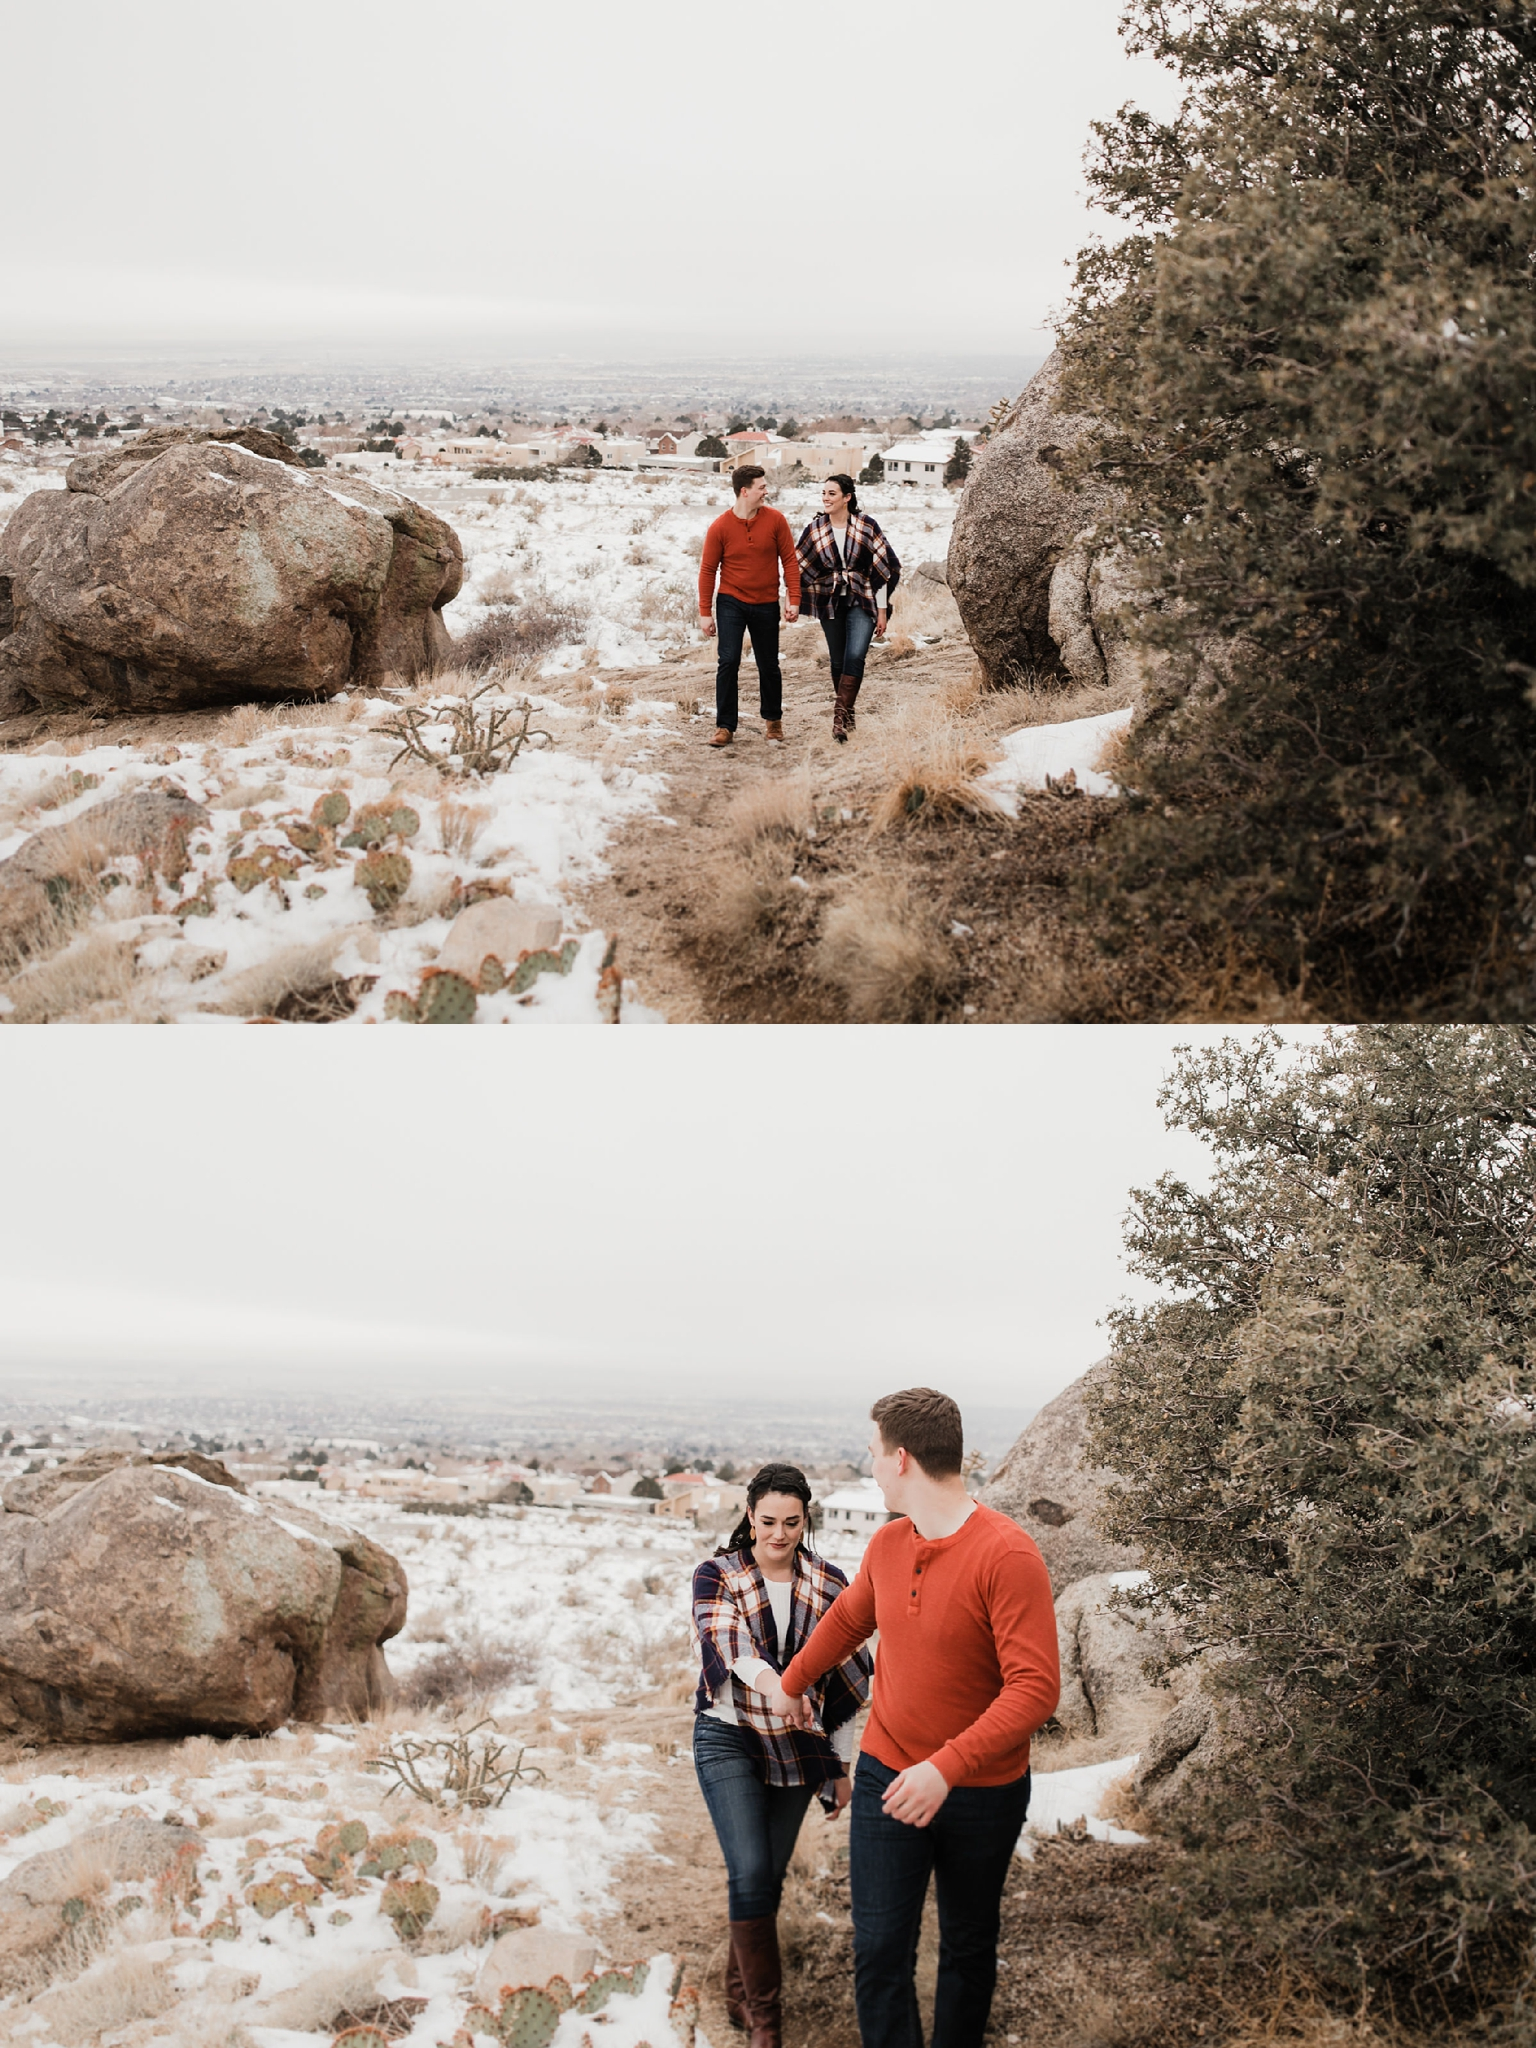 Alicia+lucia+photography+-+albuquerque+wedding+photographer+-+santa+fe+wedding+photography+-+new+mexico+wedding+photographer+-+new+mexico+wedding+-+engagement+-+albuquerque+engagement+-+winter+engagement+-+hyatt+tamaya+wedding_0010.jpg